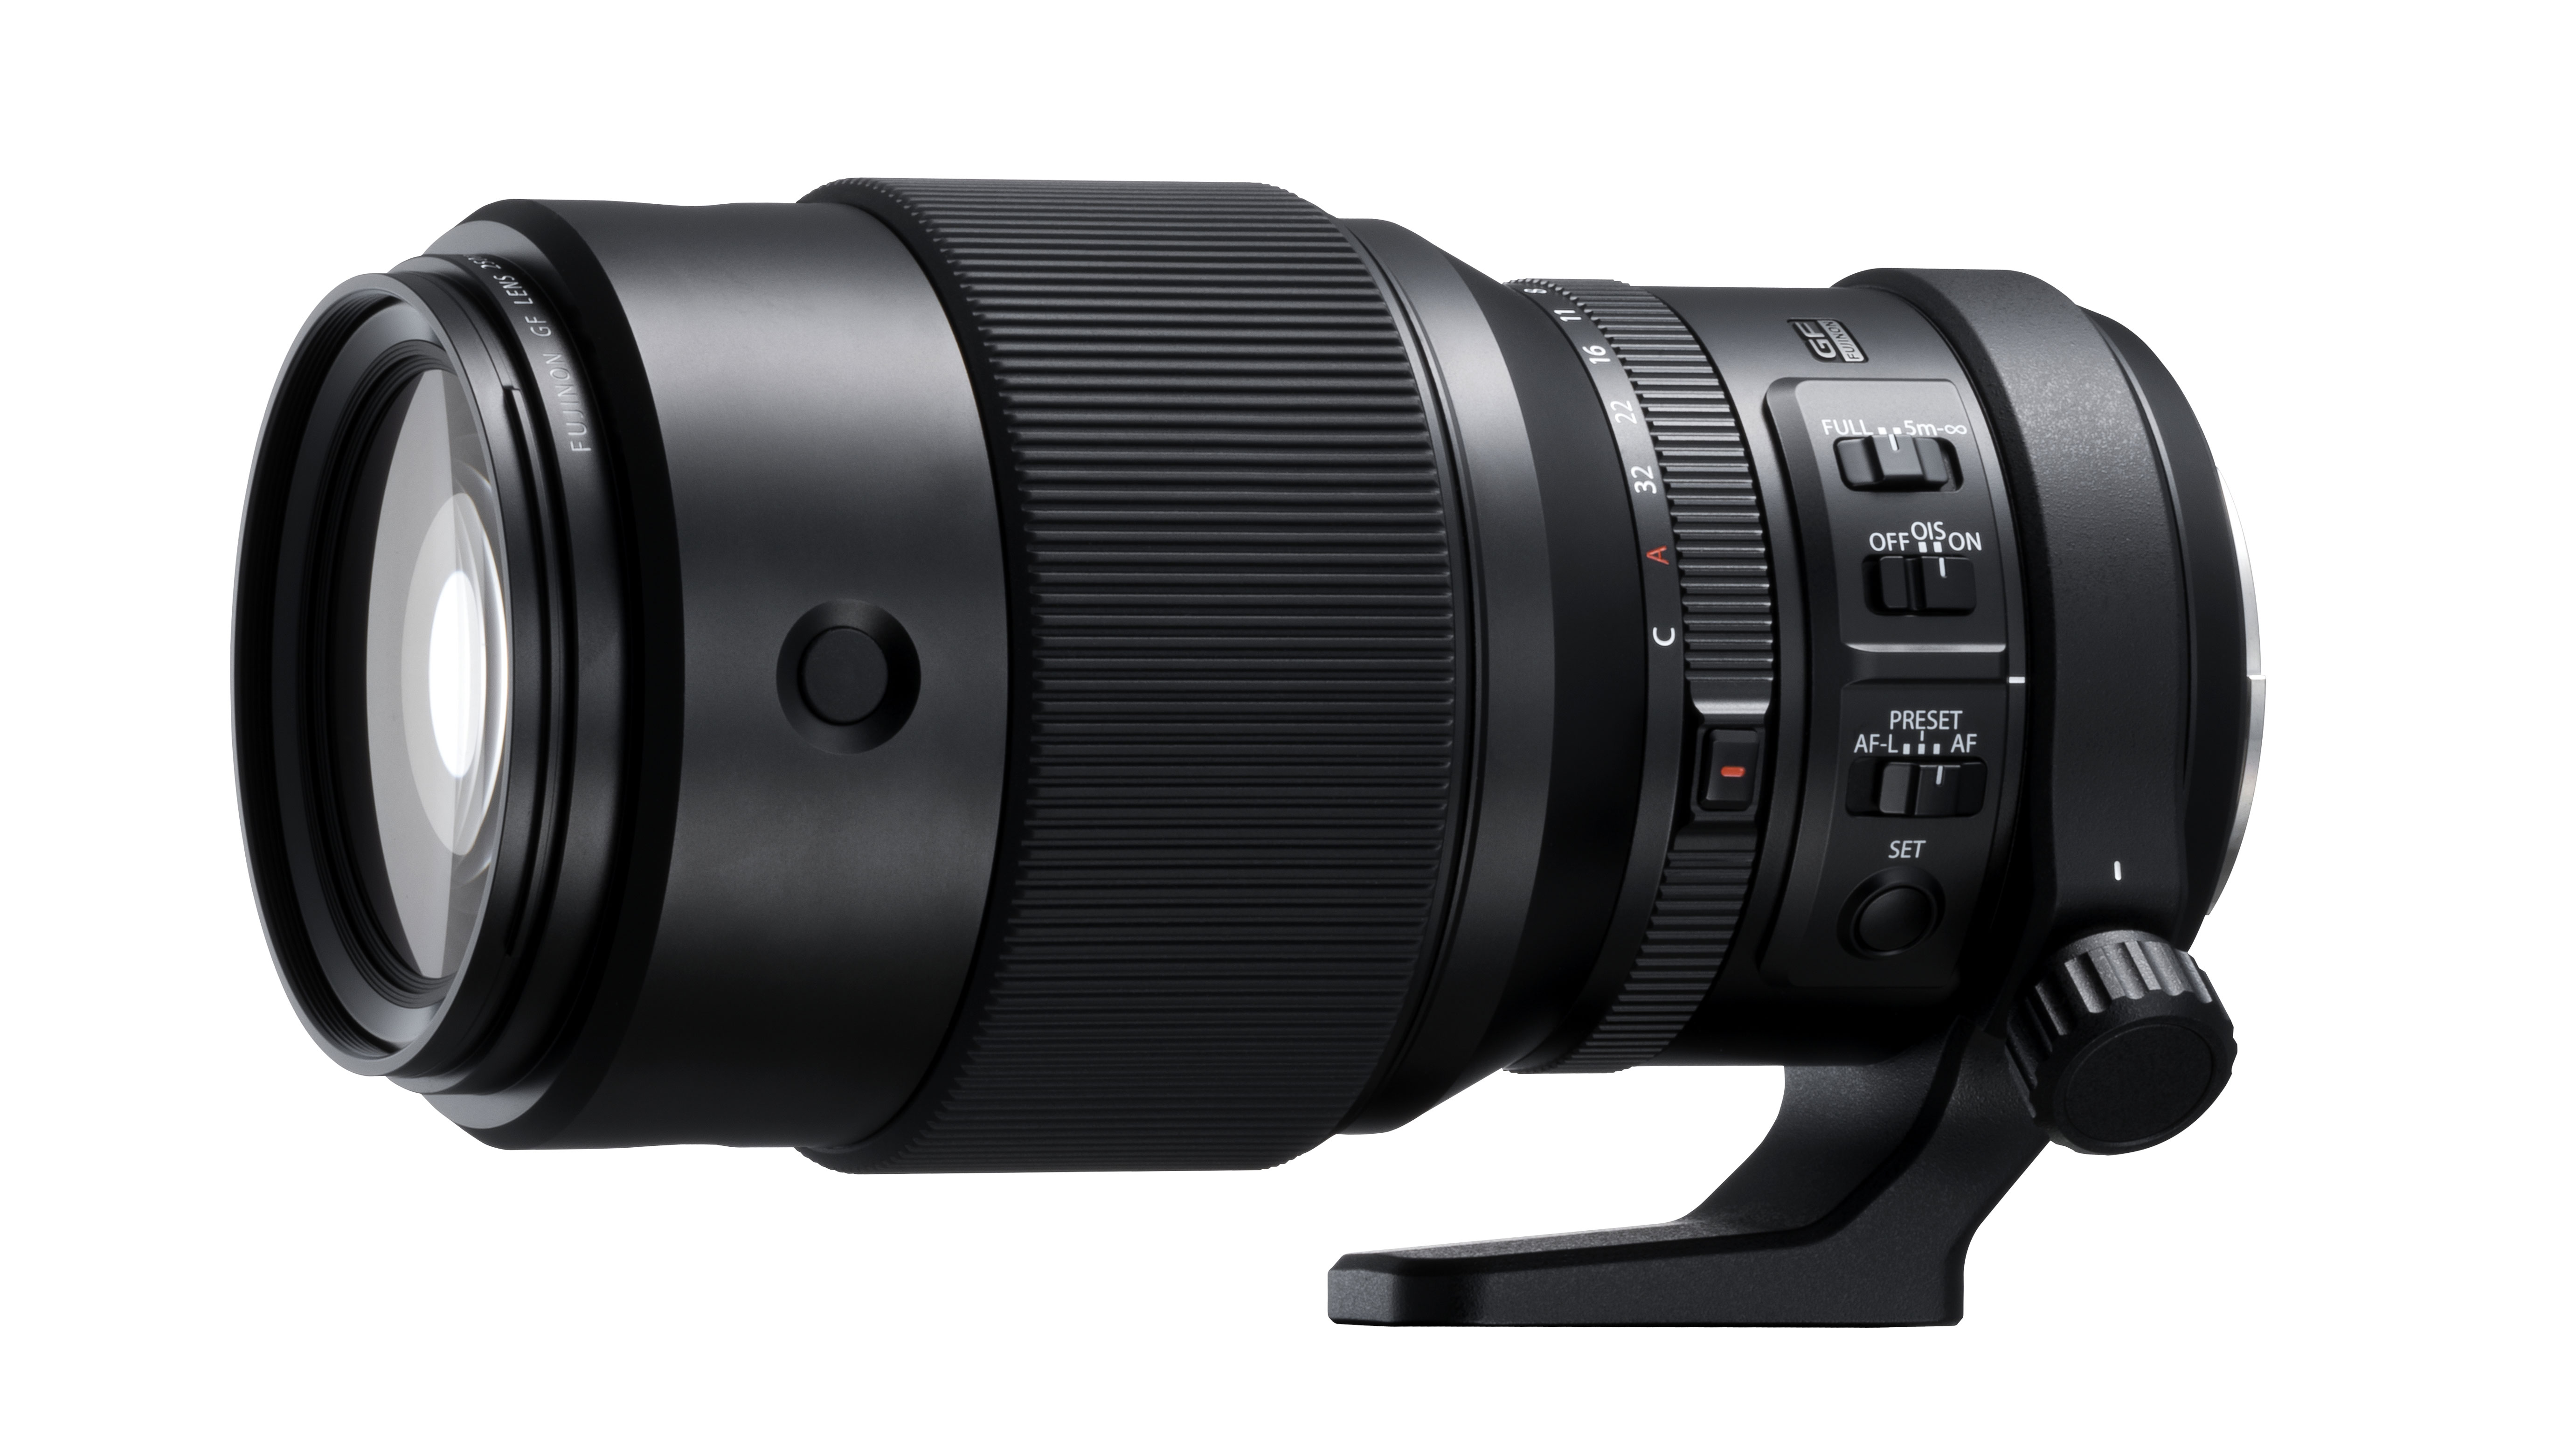 Fujifilm takes the wraps off a new 250mm lens for the GFX system